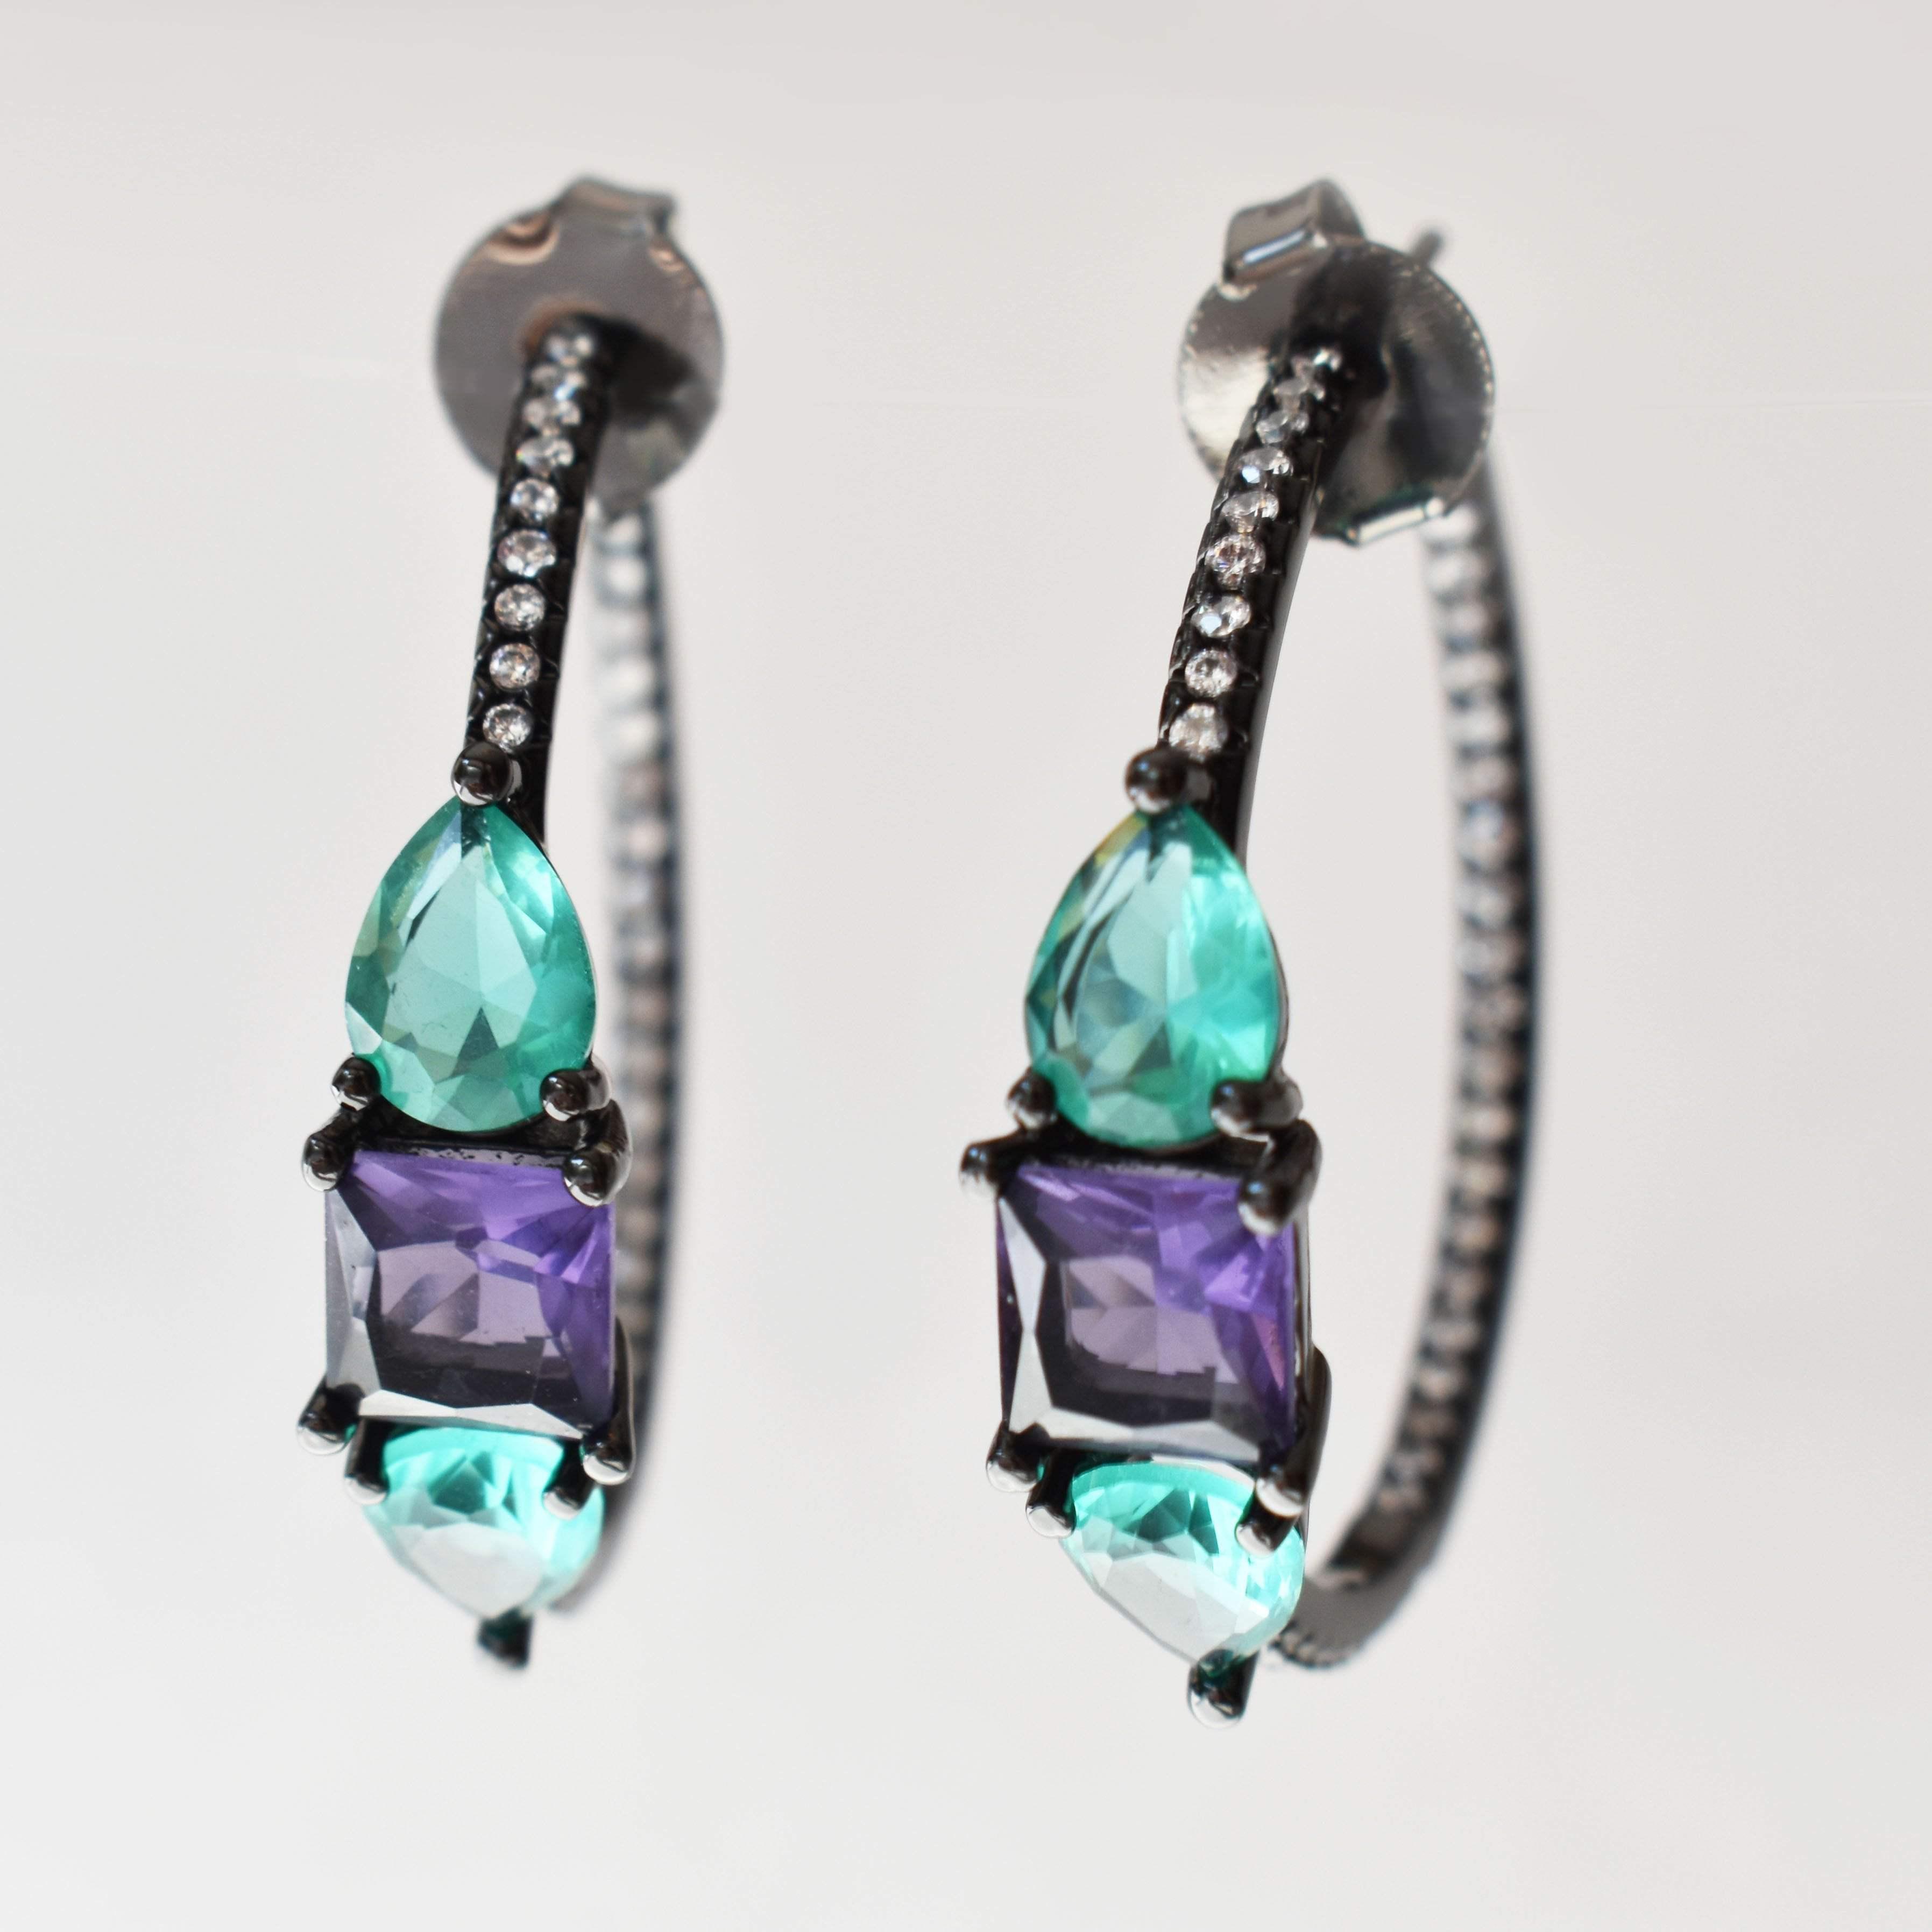 Earrings - Cubic Zirconium, Teal, Purple & Clear, Luxury Hoop Earrings